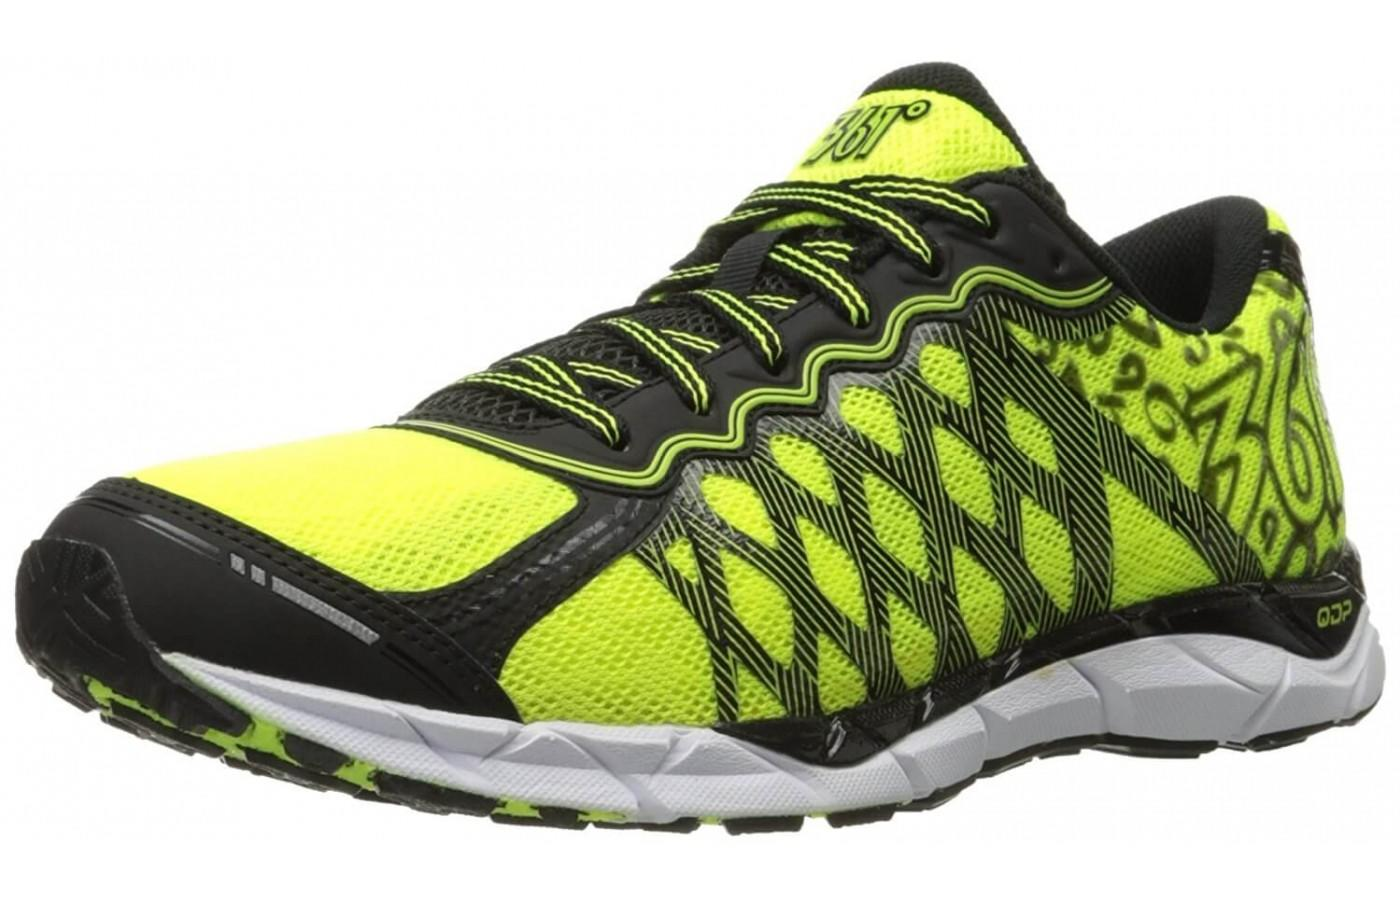 The 361 KGM2 is a lightweight and stable shoe from a company you may not have heard of.